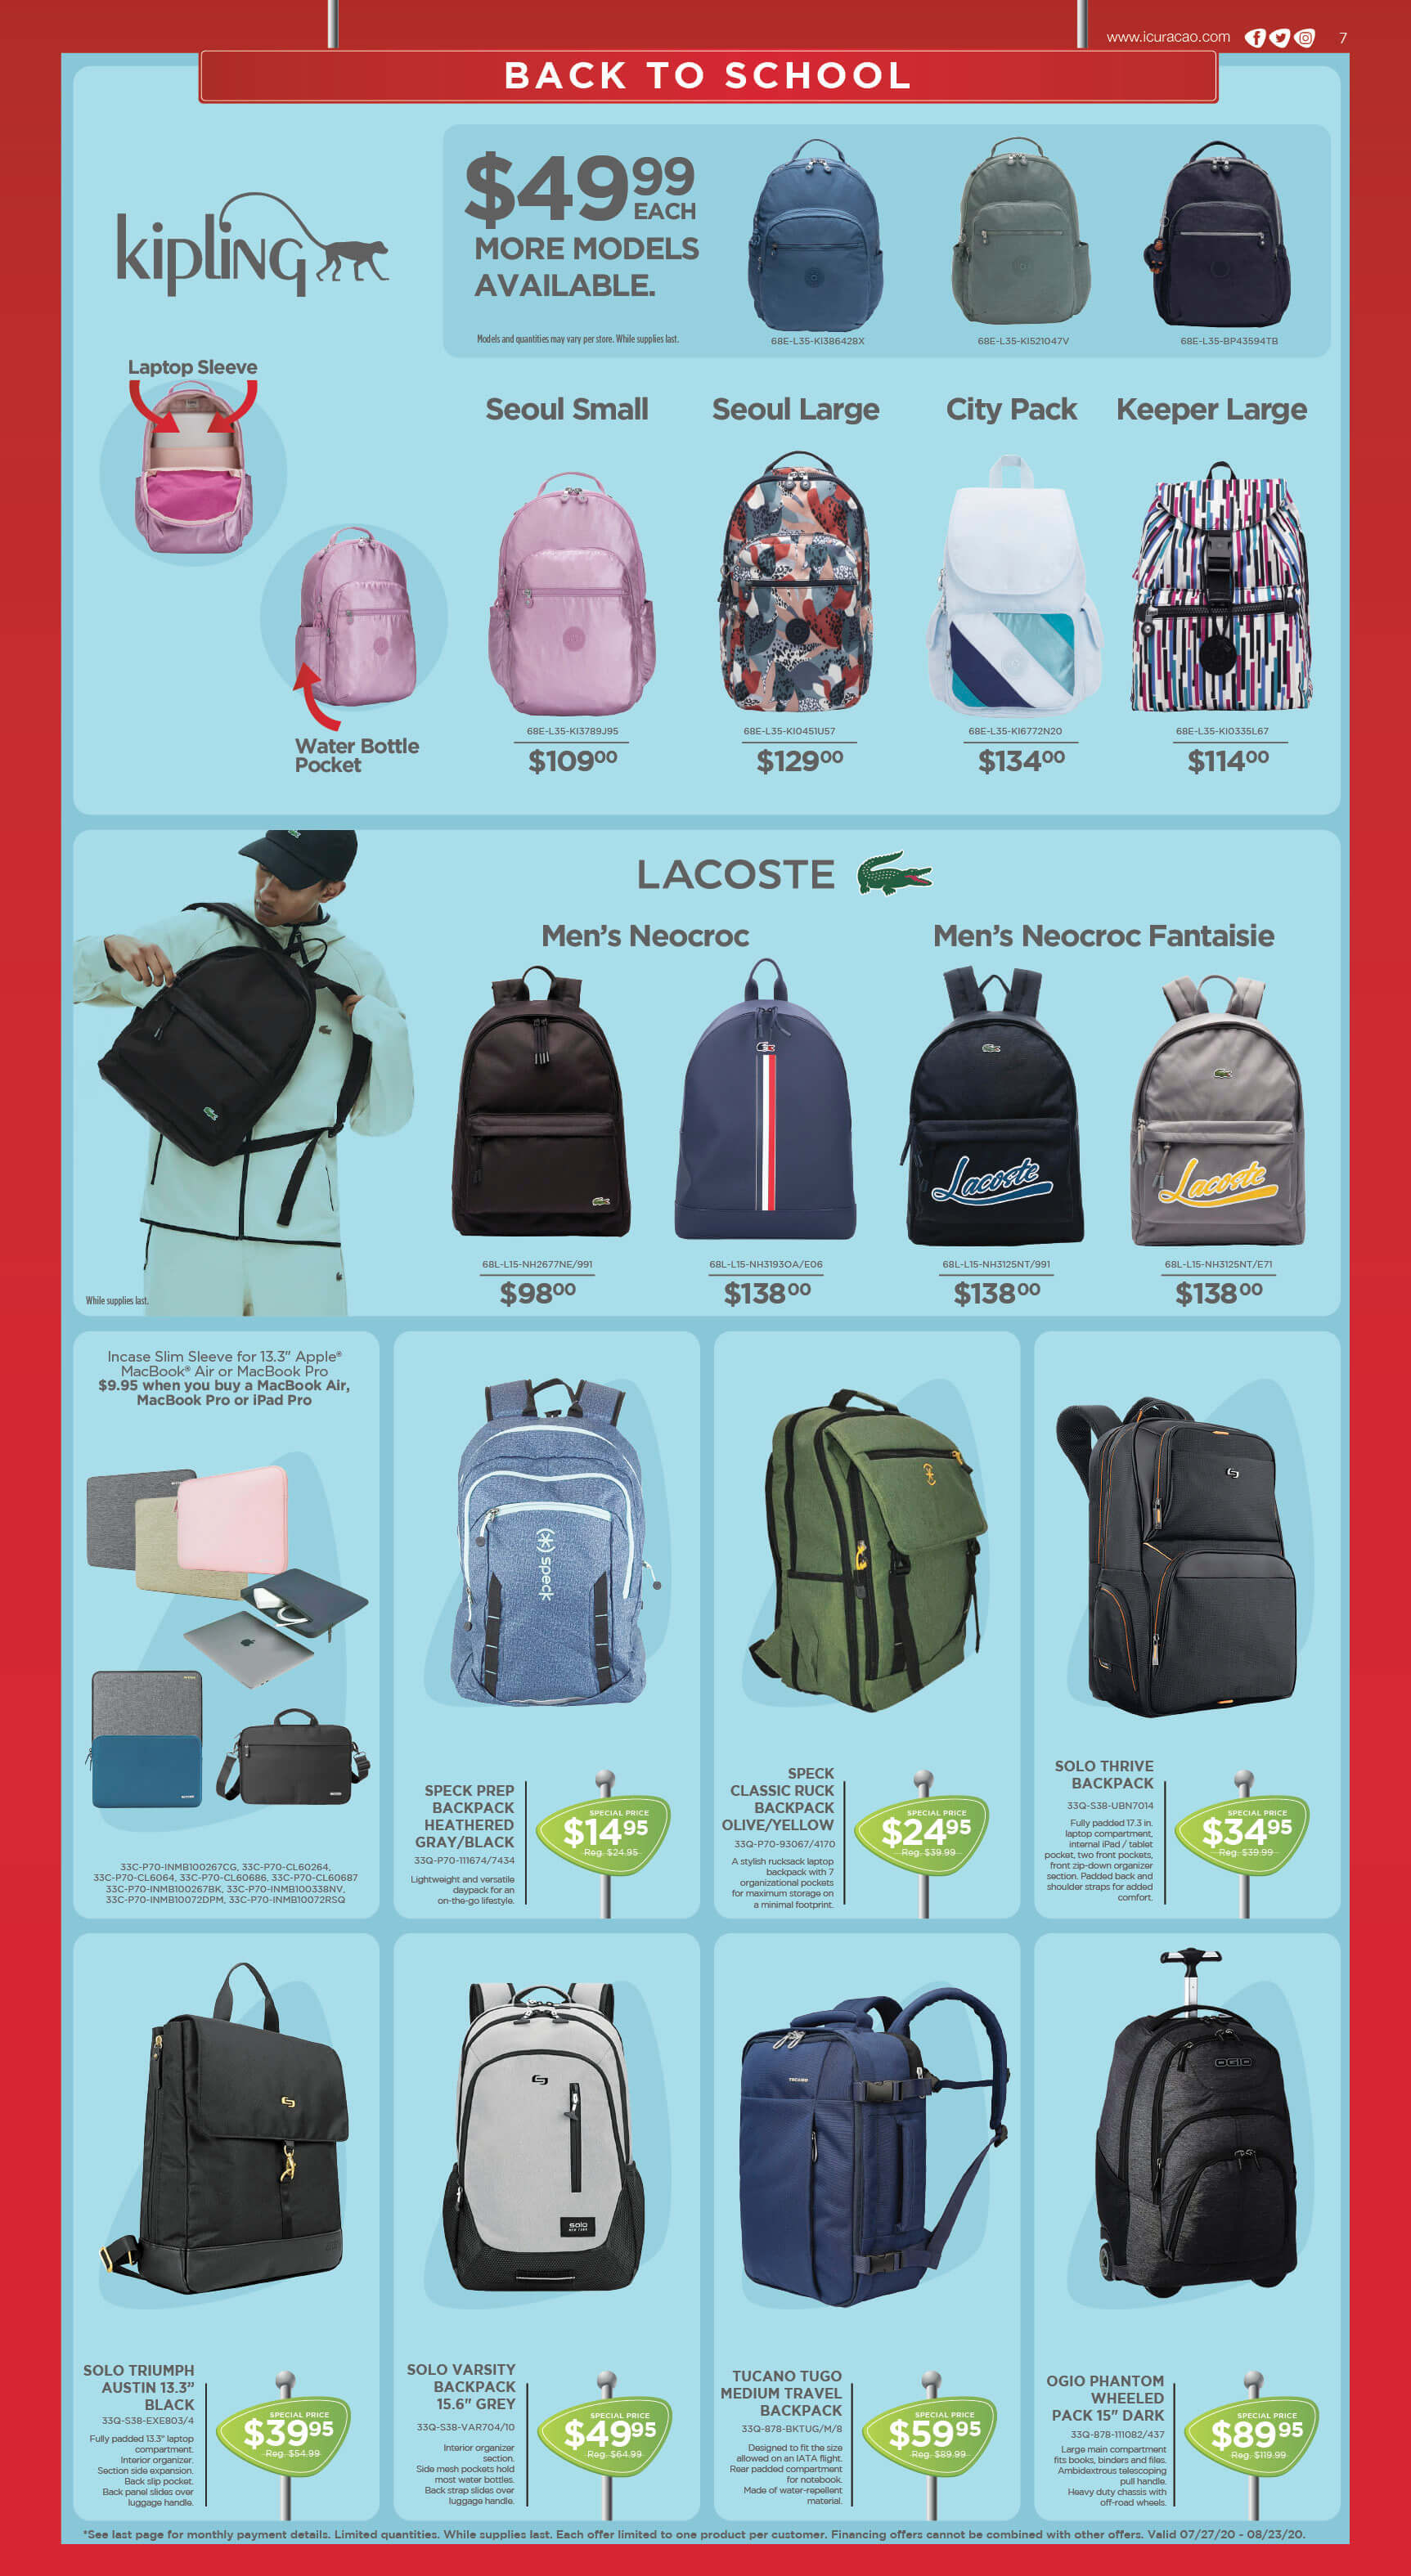 Curacao | Back to School Catalog | Page 7